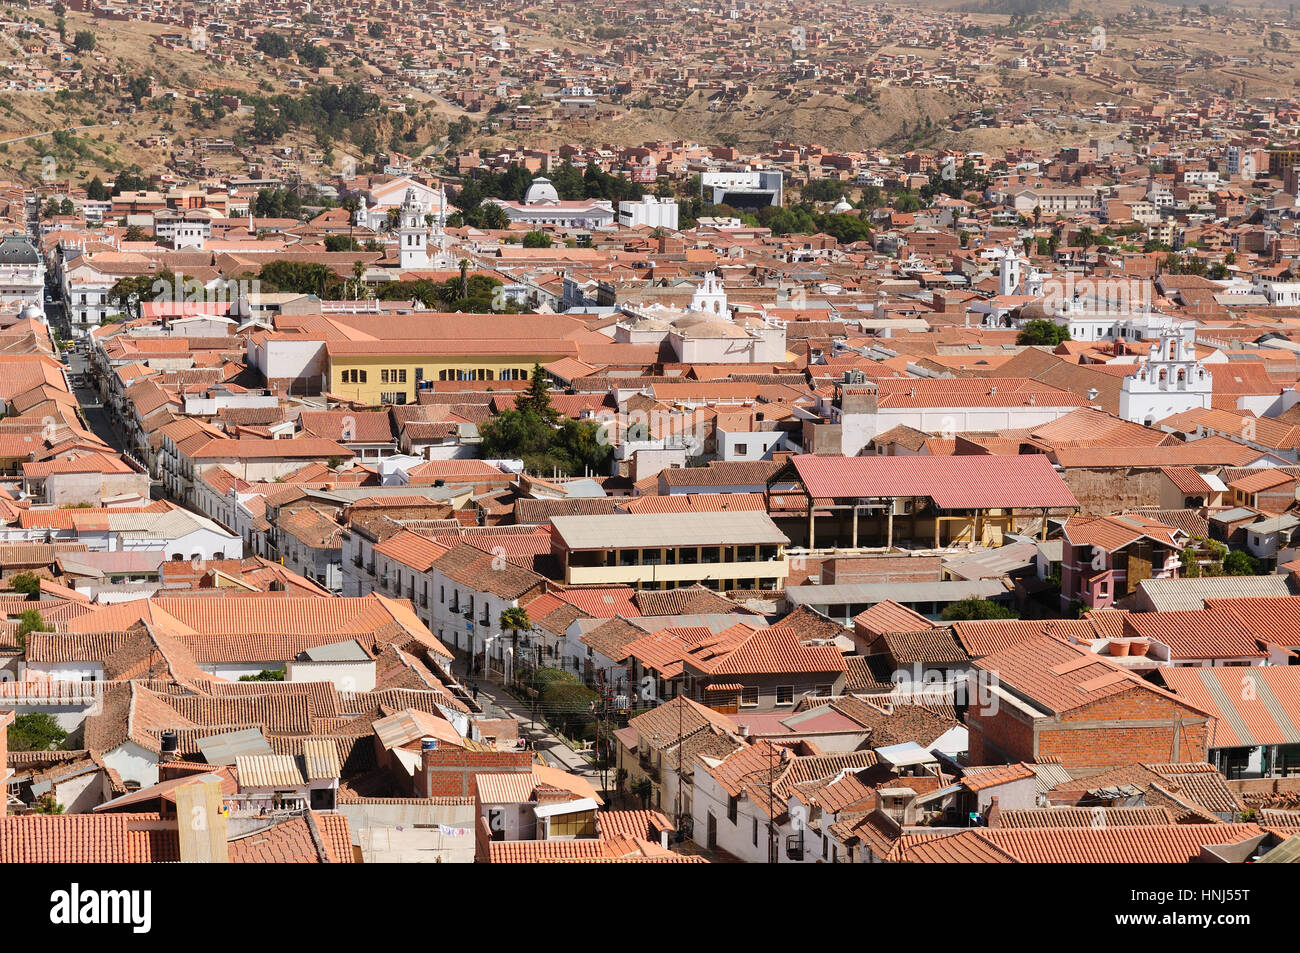 The Capital City Of Bolivia Sucre White City Has A Rich Colonial Stock Photo Alamy